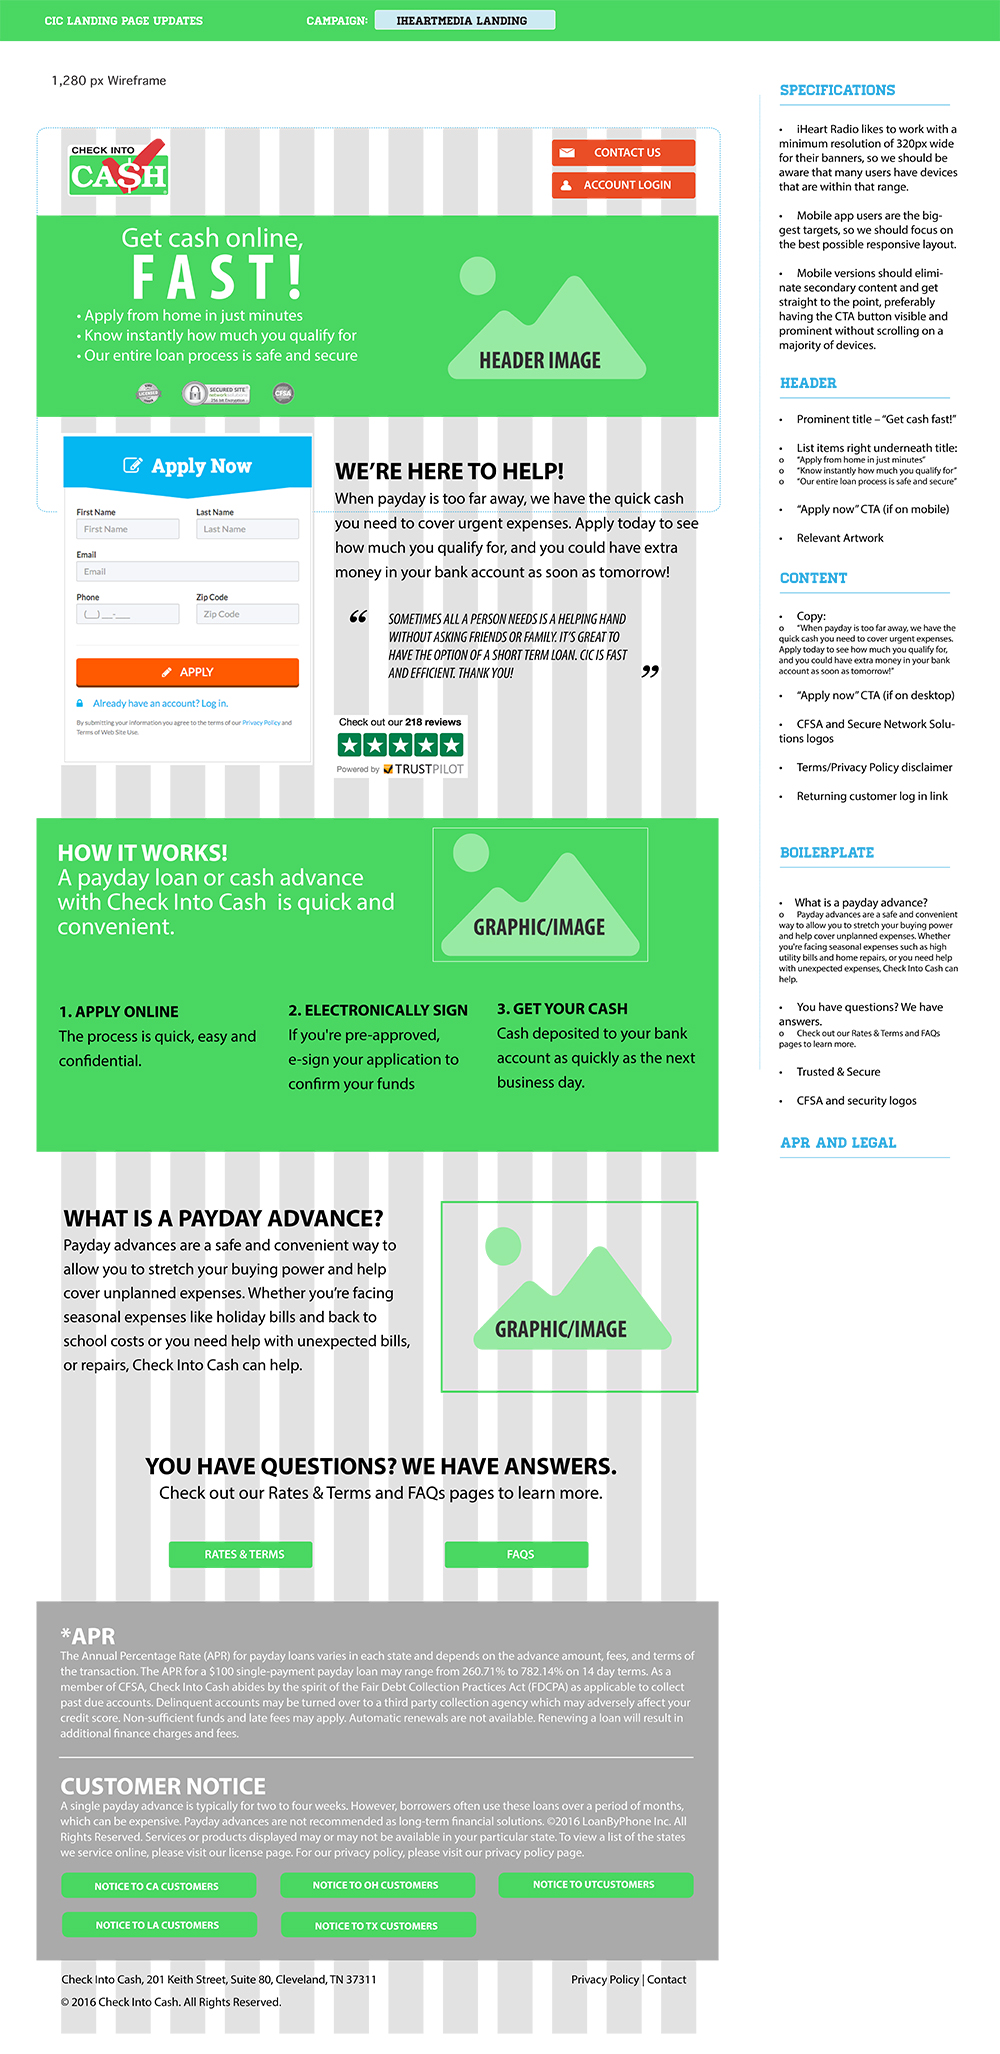 Wireframe for I Heart Media Landing Page